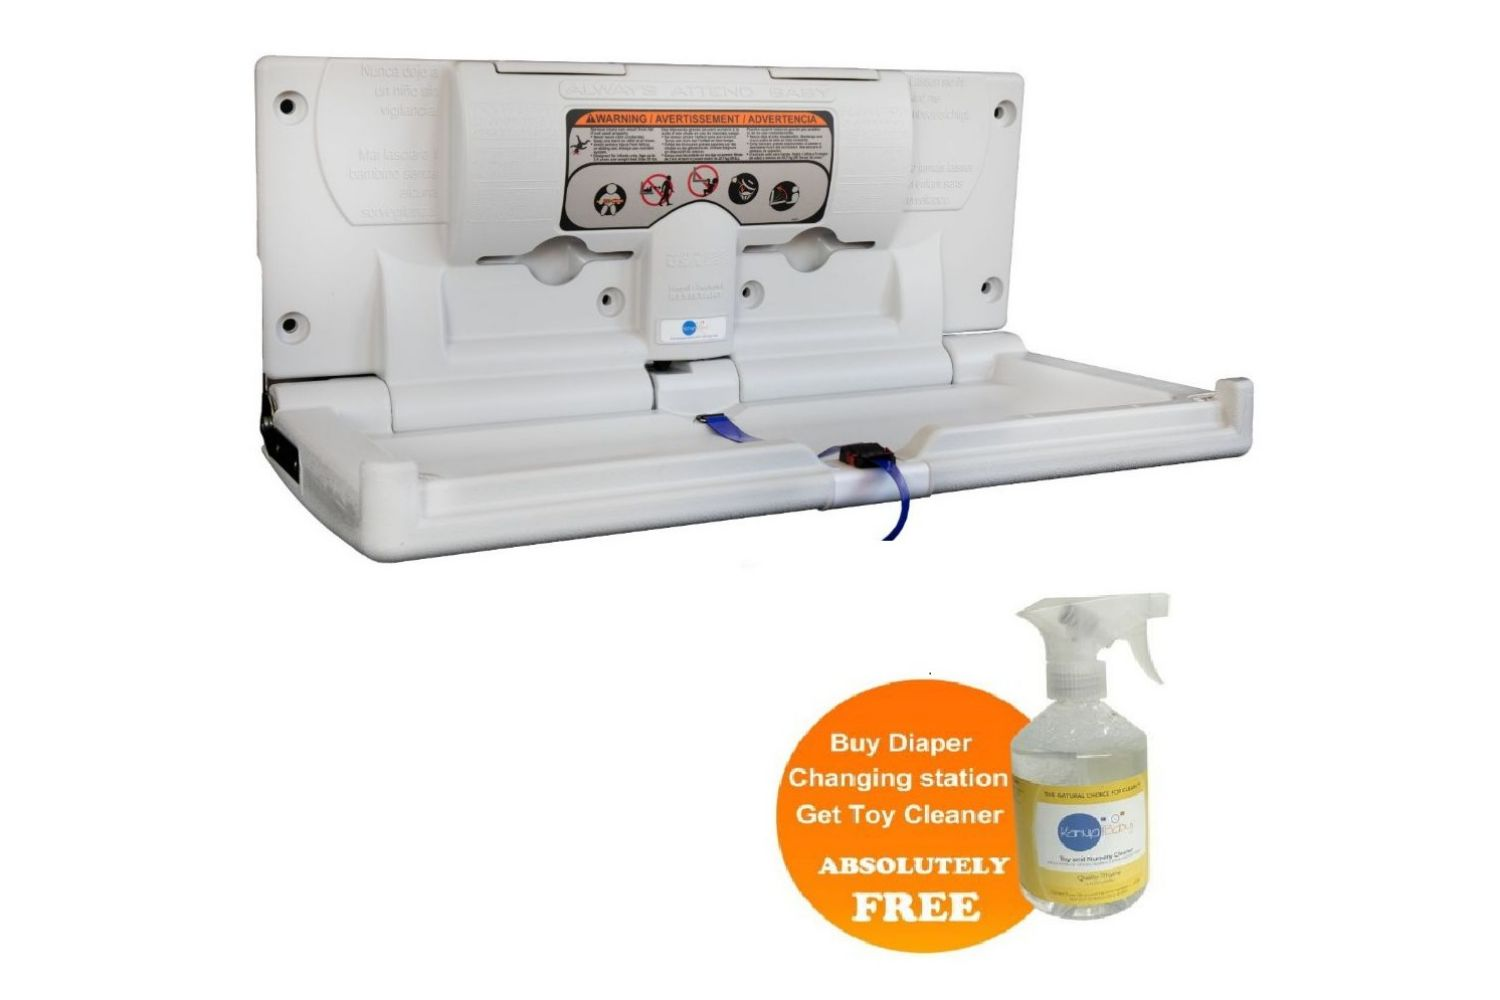 Karma Baby Diaper Changing Table with FREE Karma Toy Cleaner + FREE Set of Liners + FREE digital download called